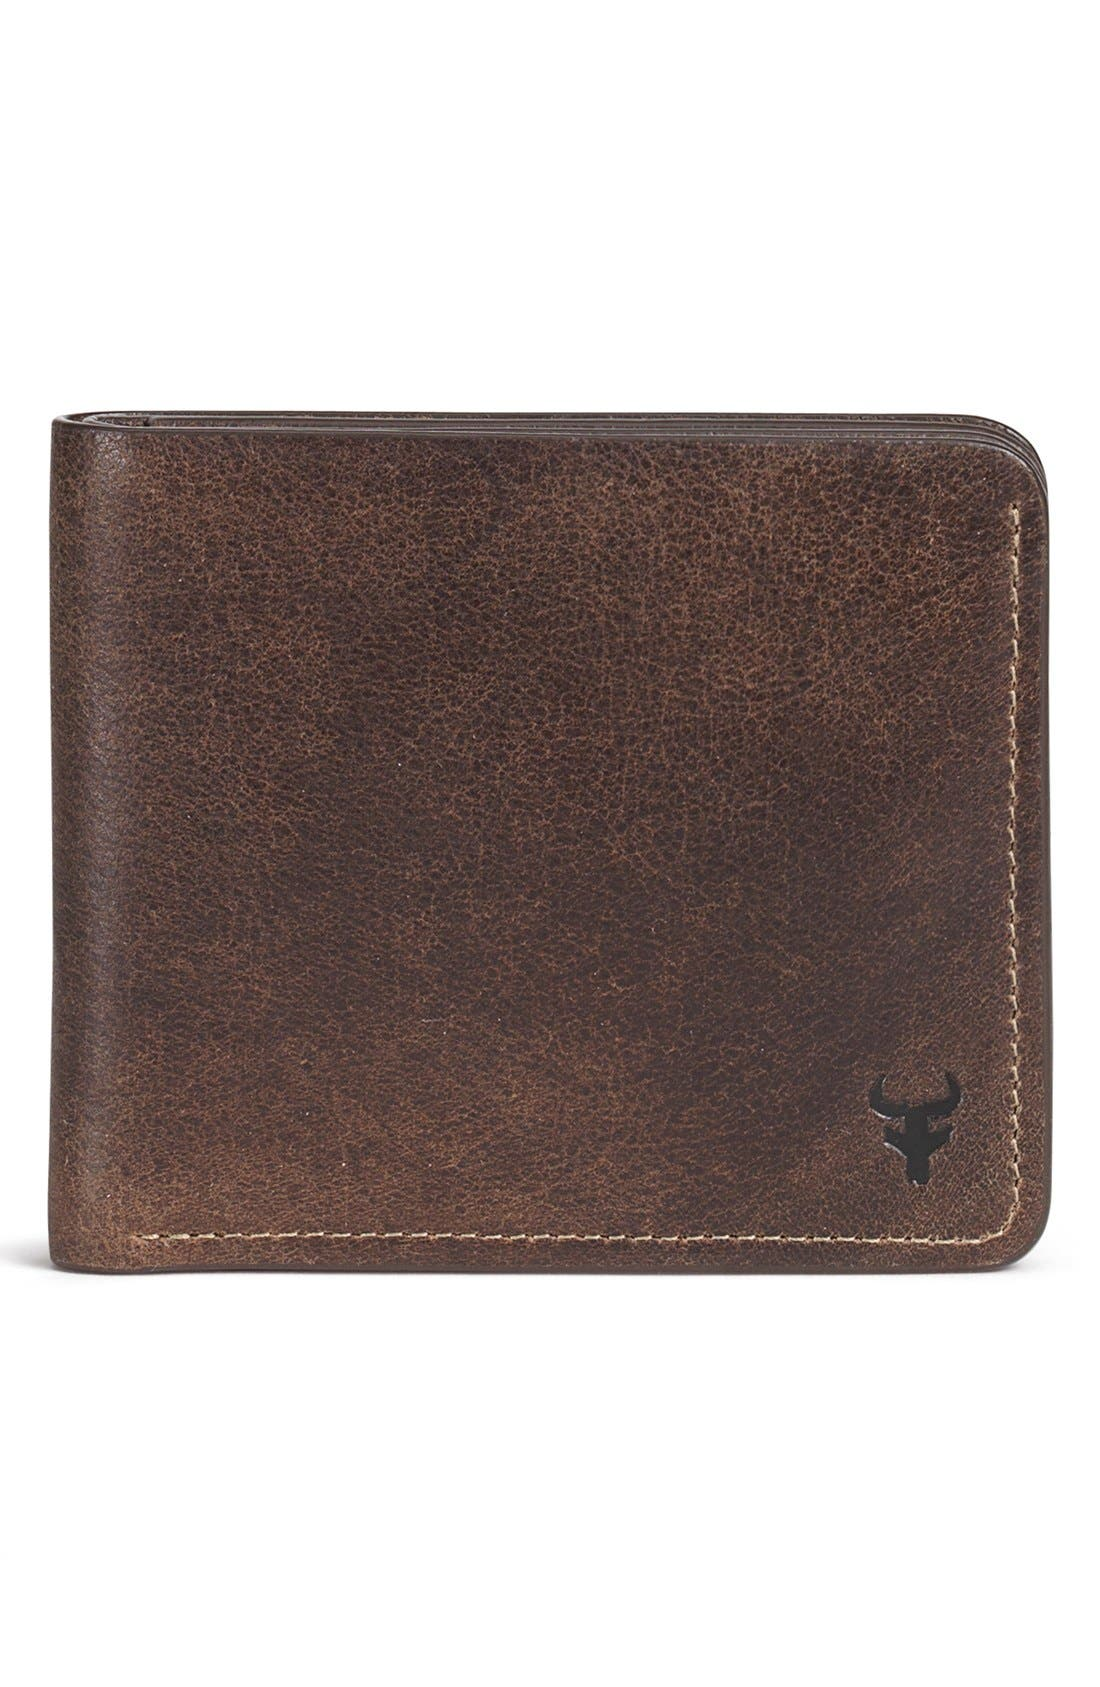 'Jackson' Slimfold Bison Leather Wallet,                             Main thumbnail 1, color,                             212